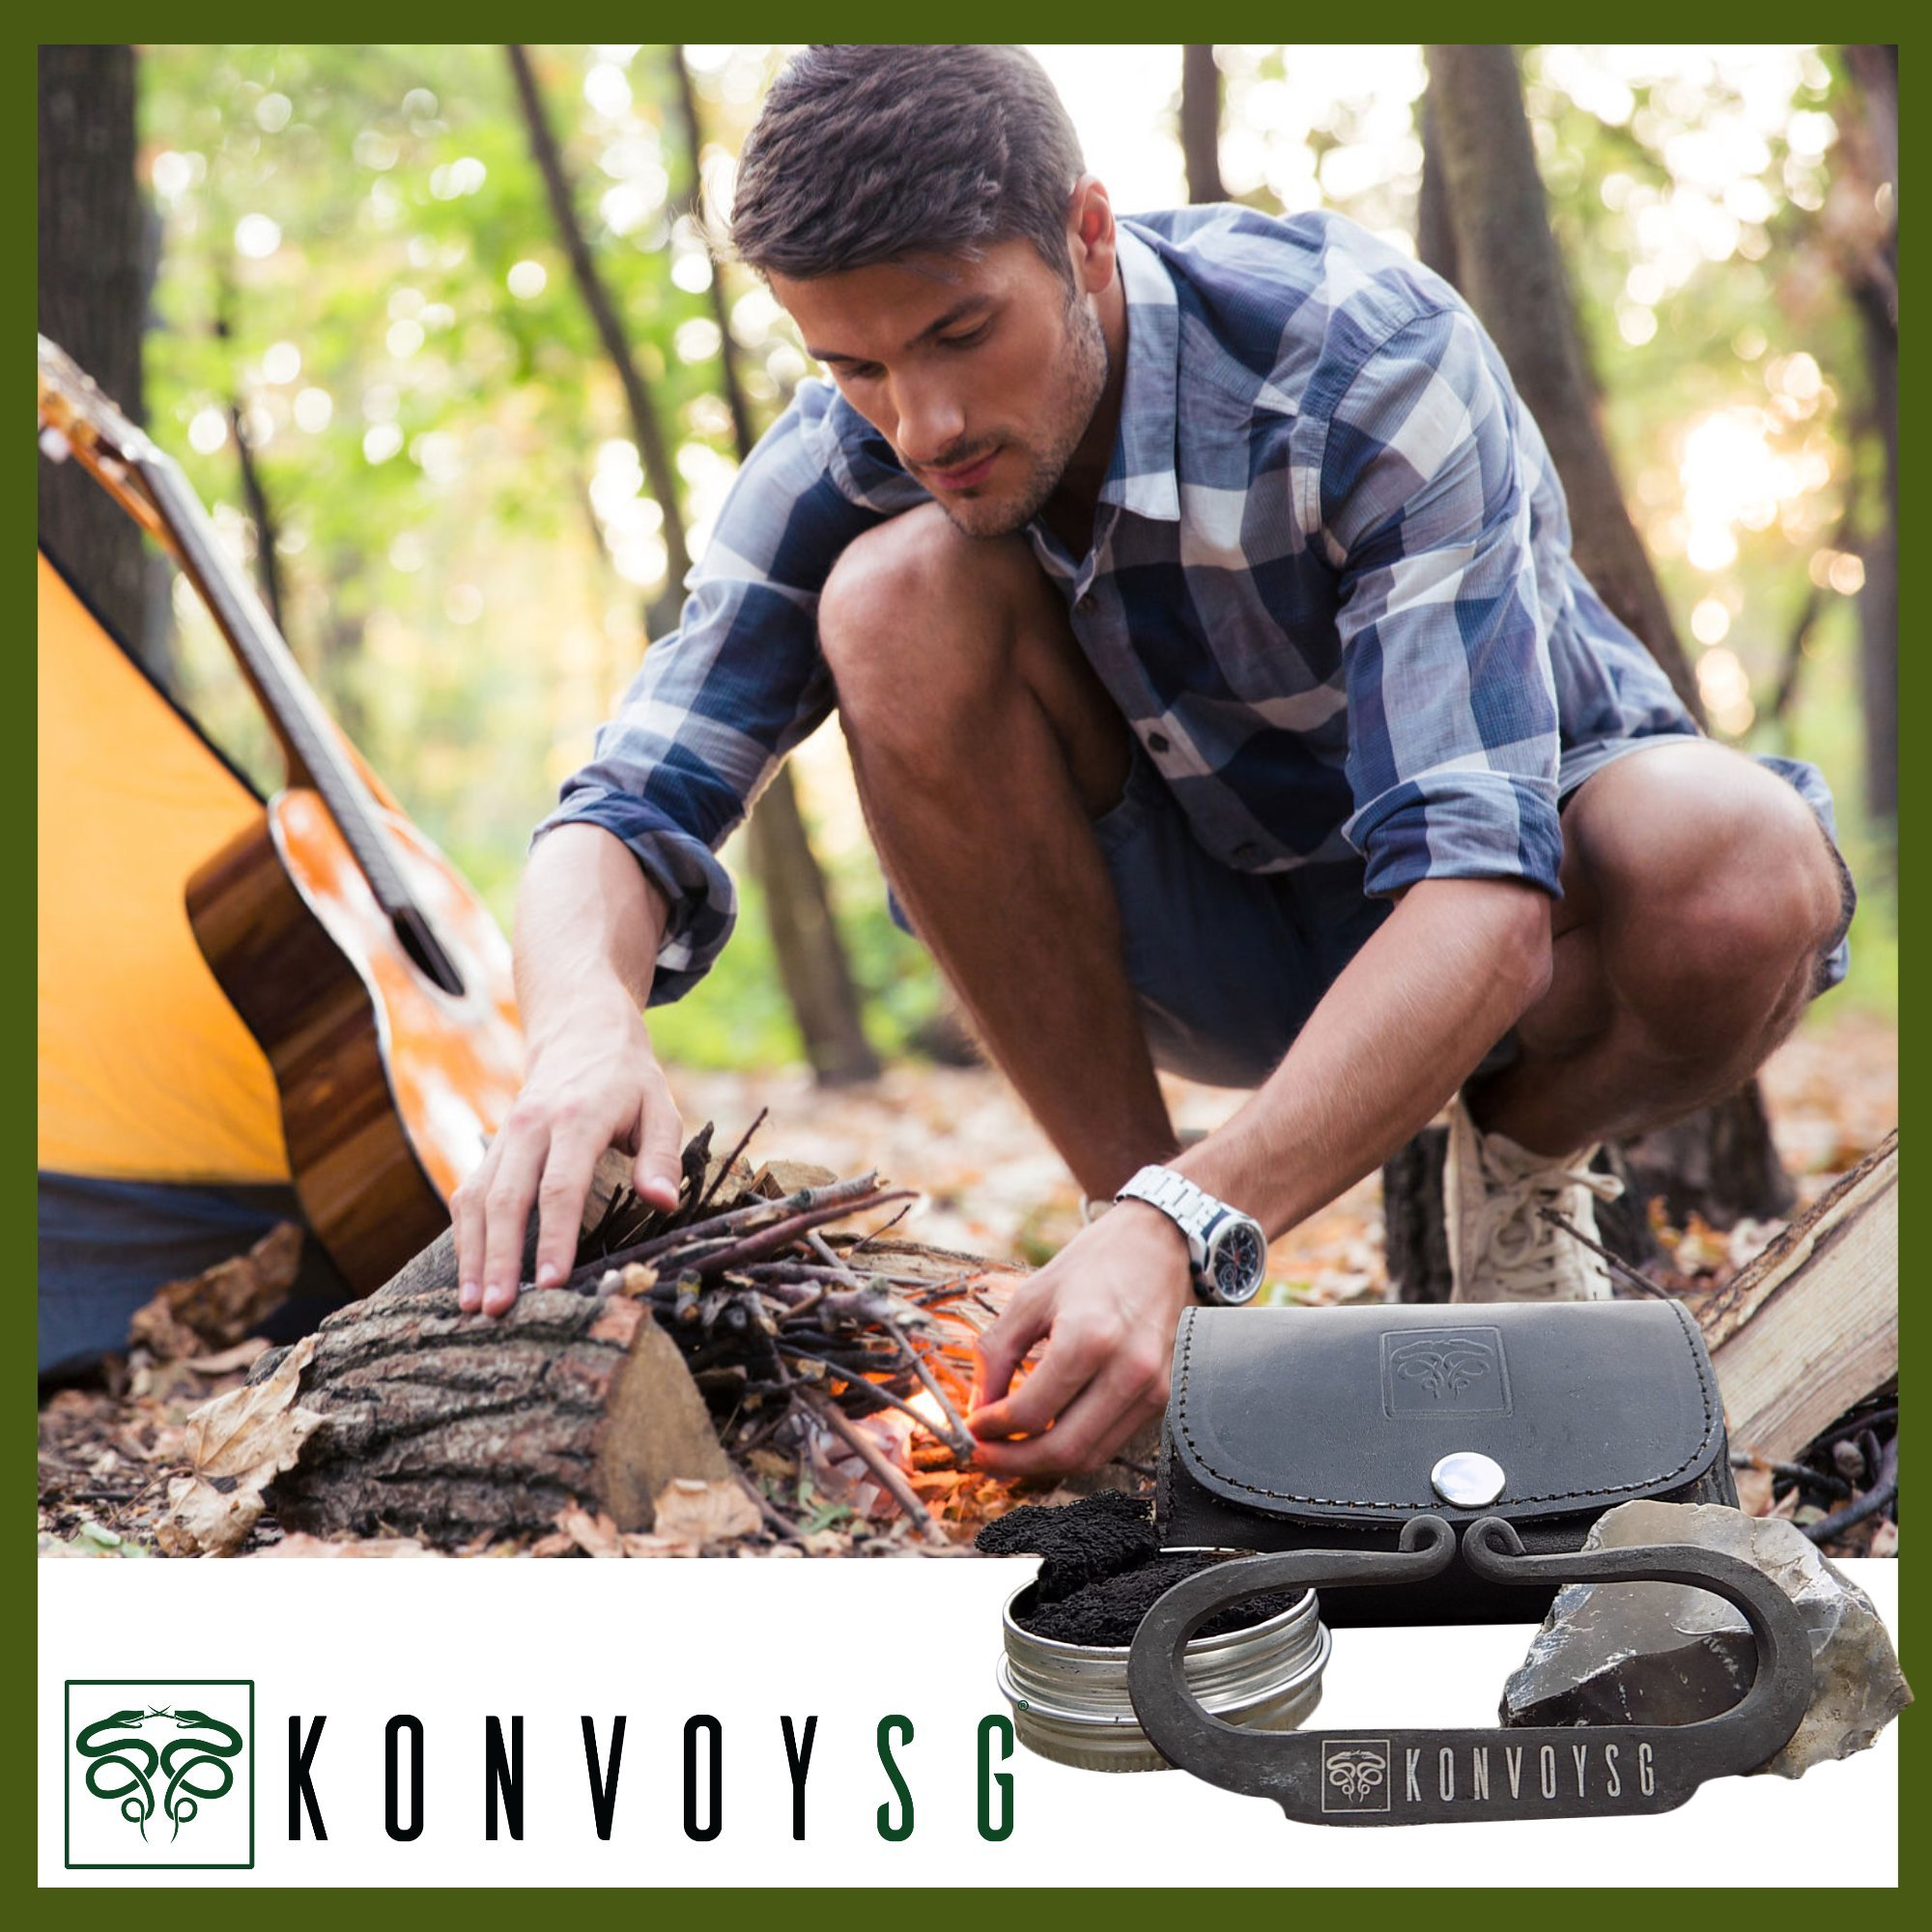 KonvoySG Flint and Steel Kit. Fire Striker, English Flint Stone & Char Cloth Traditional Hand Forged Fire Starter with a Leather Gift Pouch and Emergency Tinder Jute Bag (Black) by KonvoySG (Image #2)